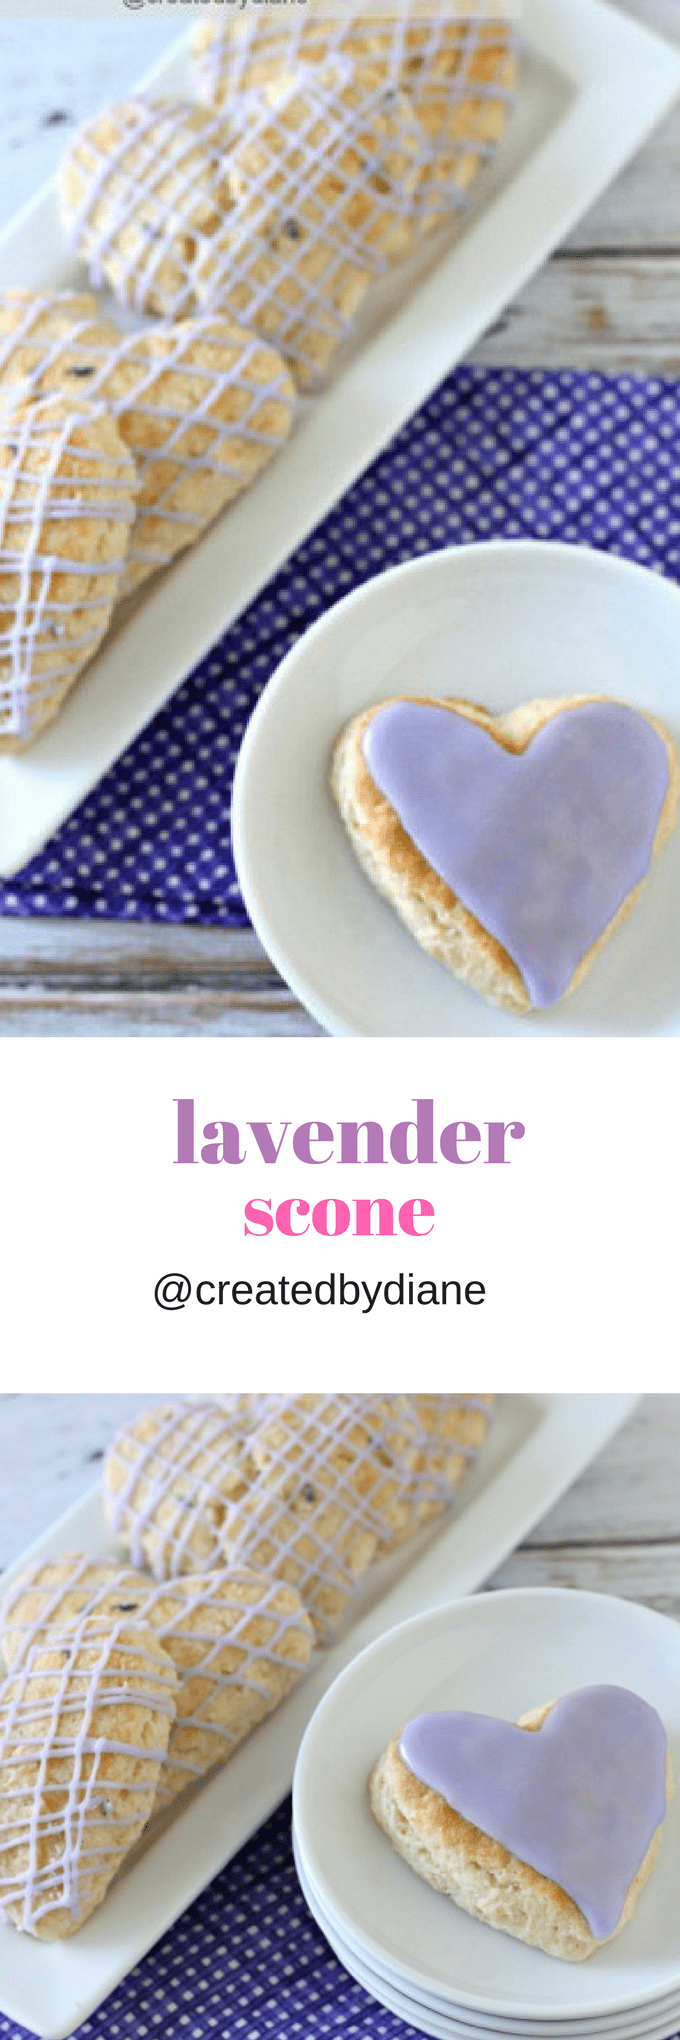 lavender scone recipe with lavender flavored icing @createdbydiane